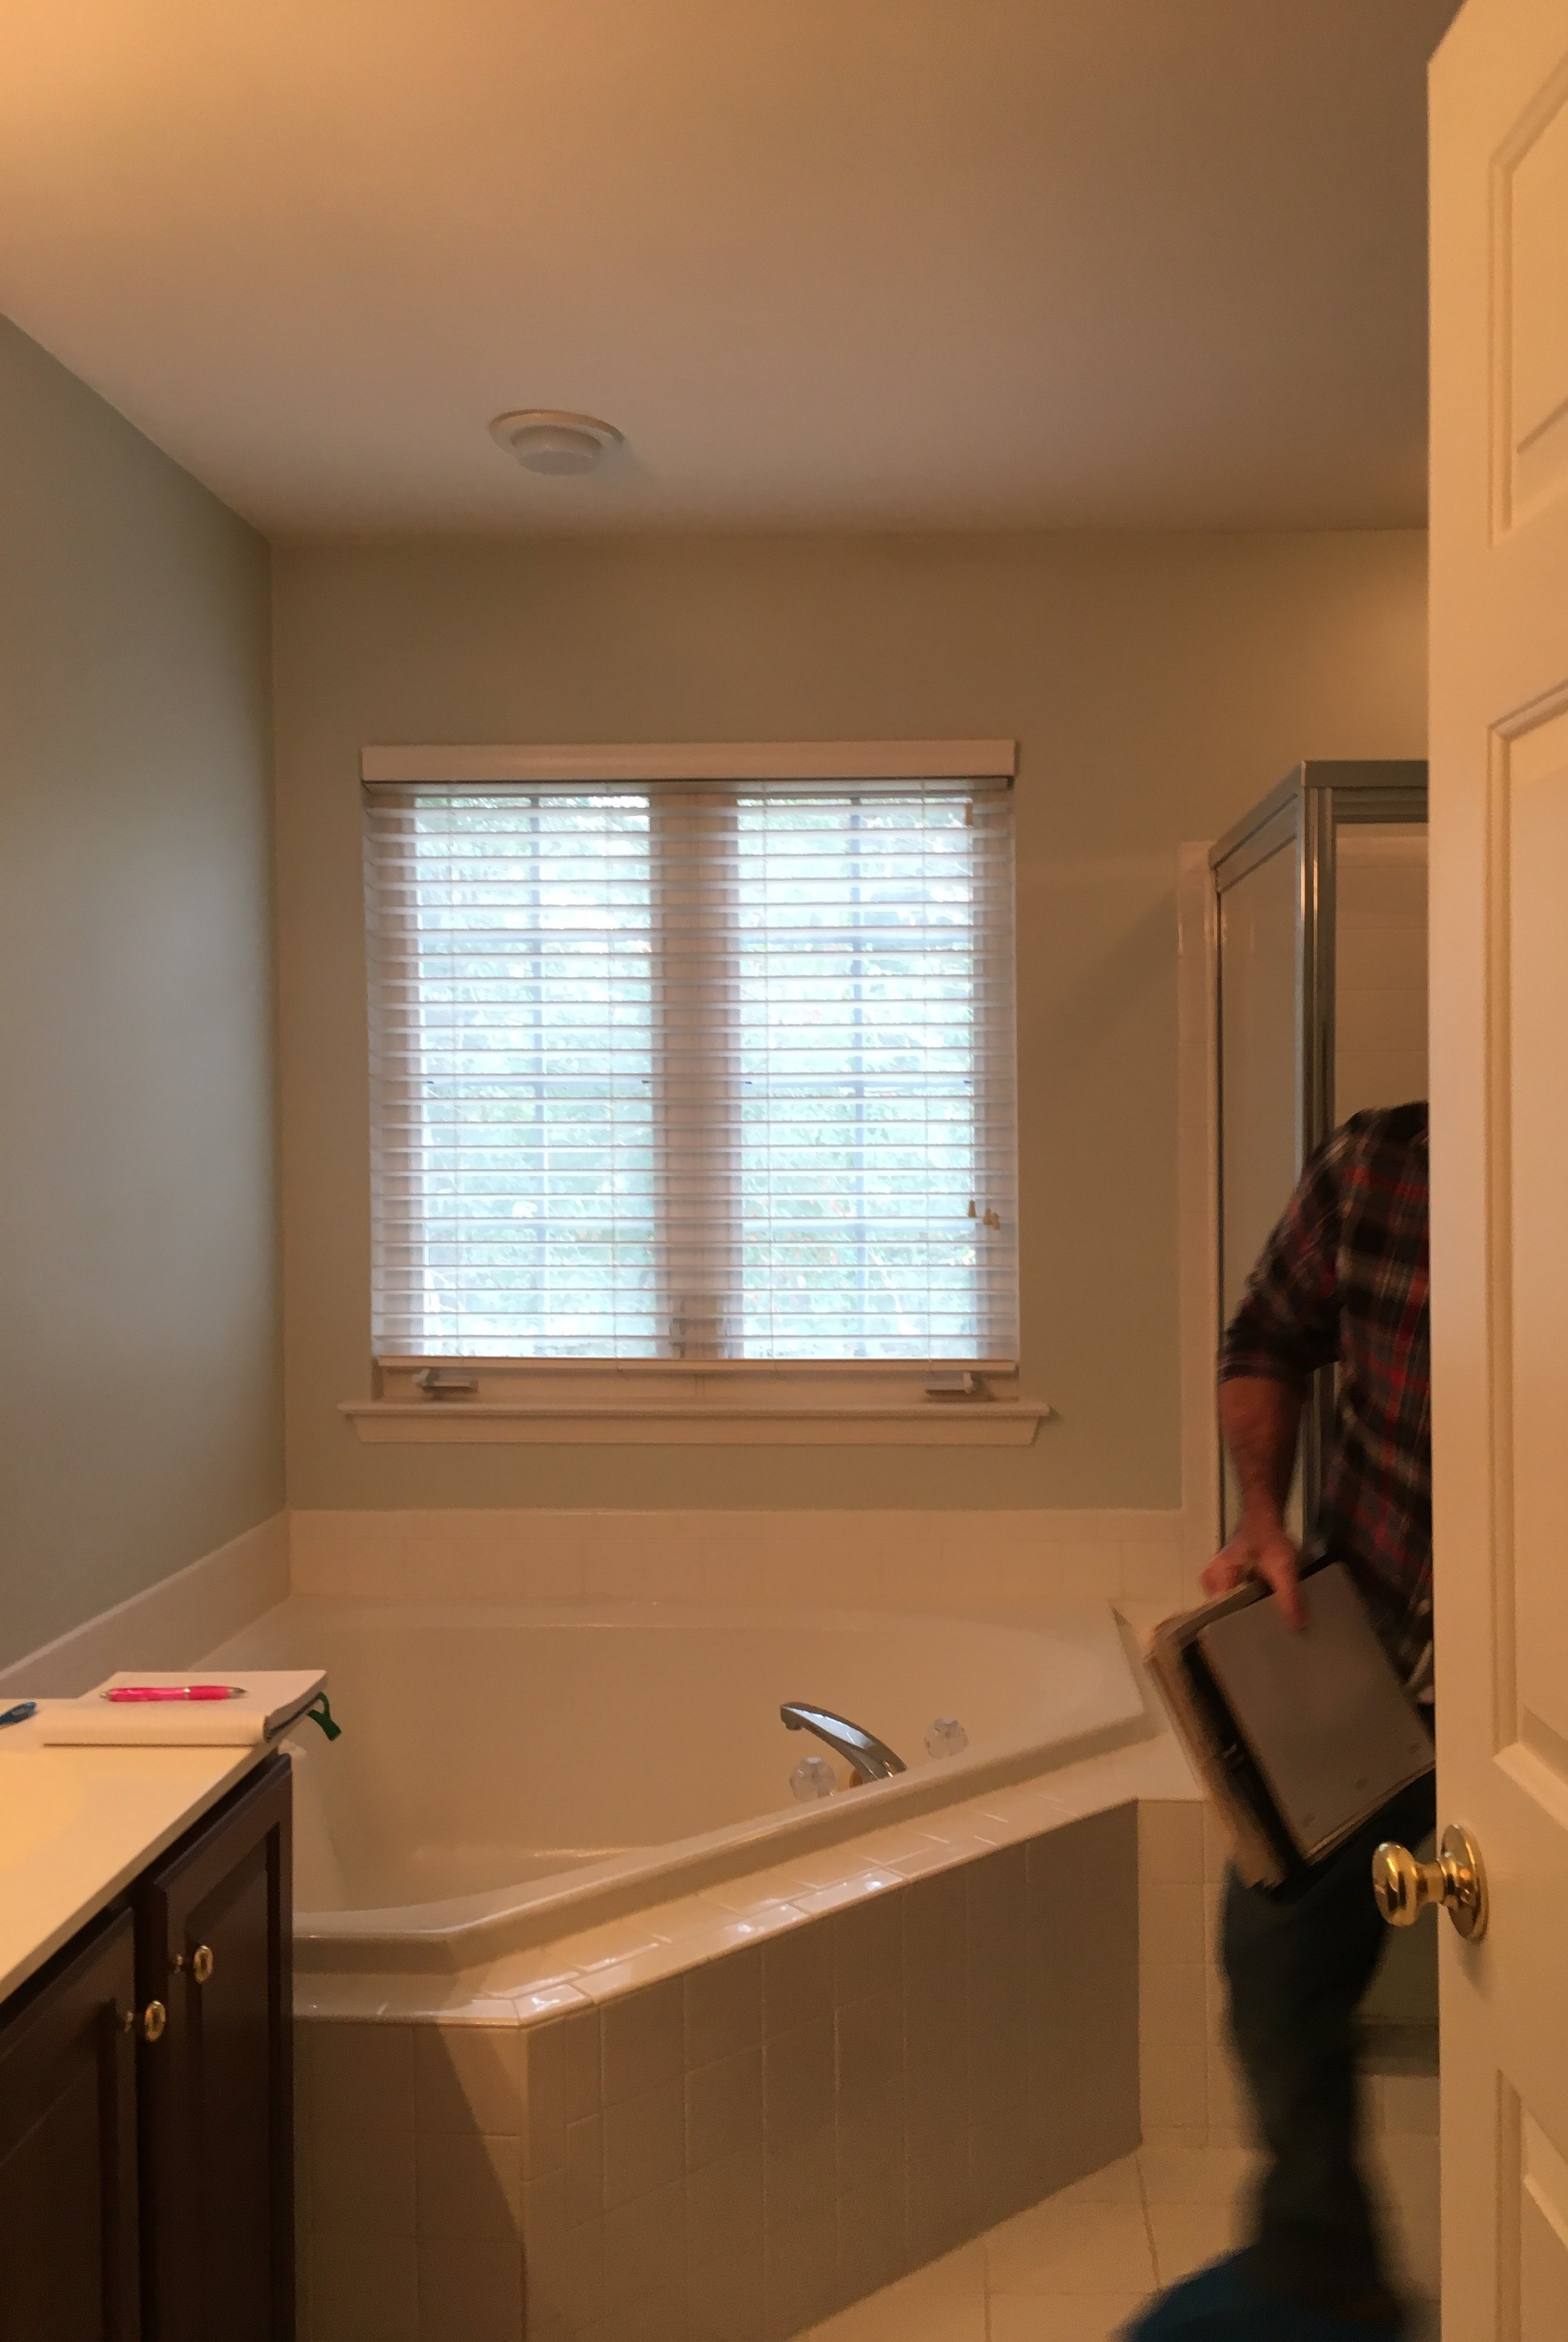 BEFORE: Typical 90's, new-construction master bathroom with corner whirlpool tub.